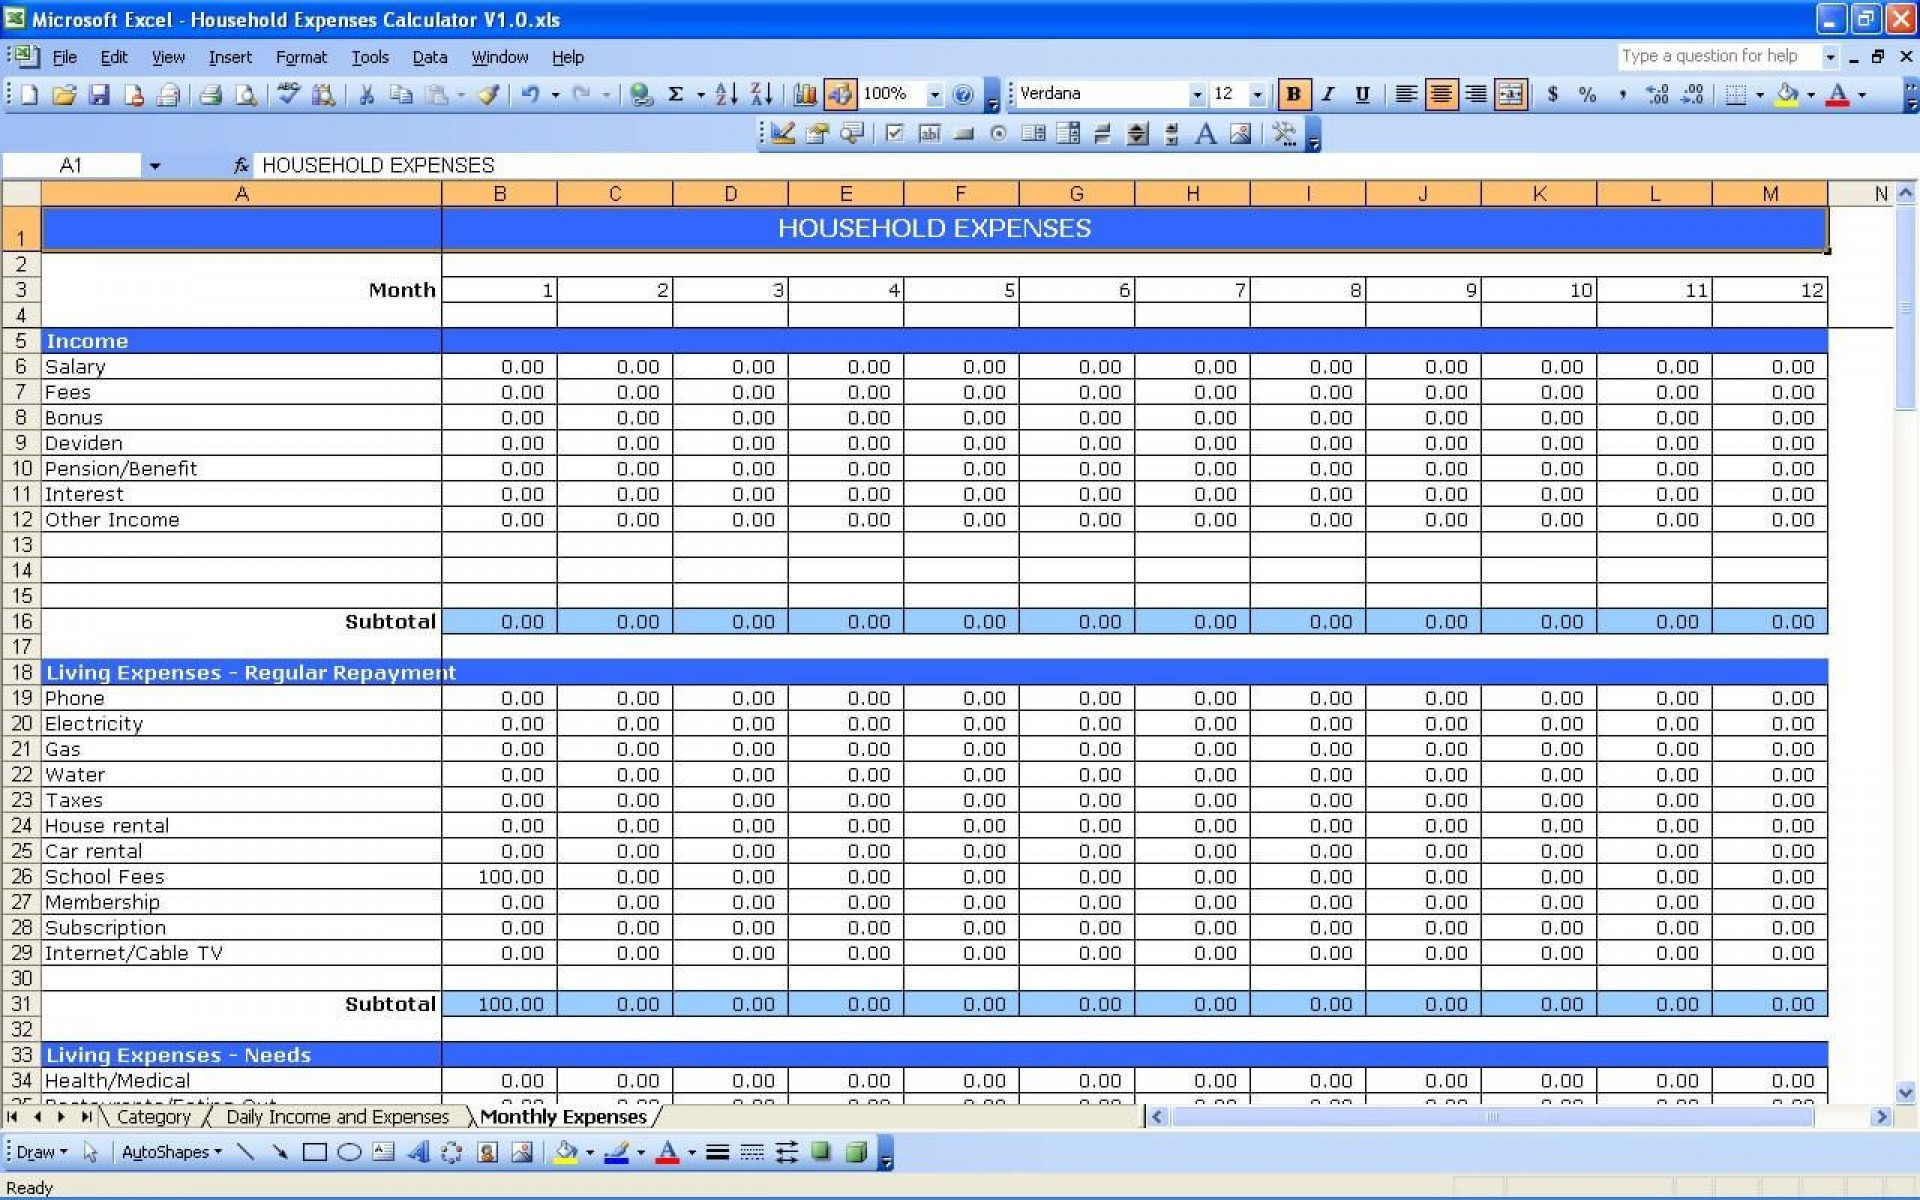 005 Incredible Personal Expense Spreadsheet Excel Template Sample  Monthly Budget1920